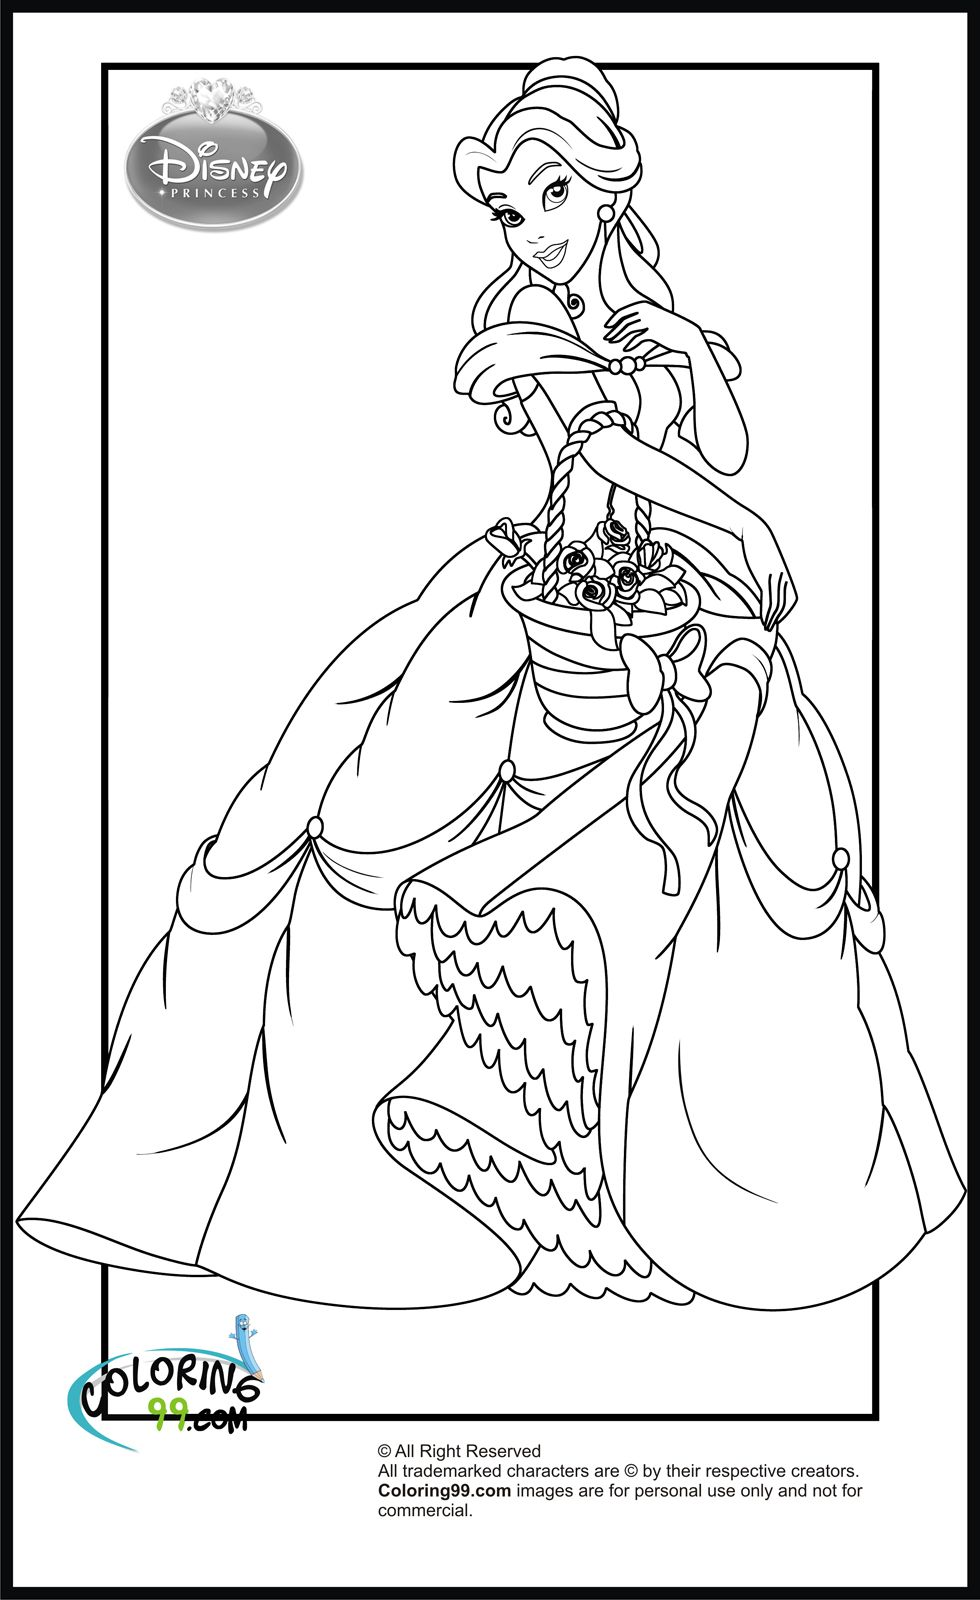 Disney Princess Coloring Pages Minister Coloring Disney Princess Coloring Pages Princess Coloring Pages Disney Princess Colors